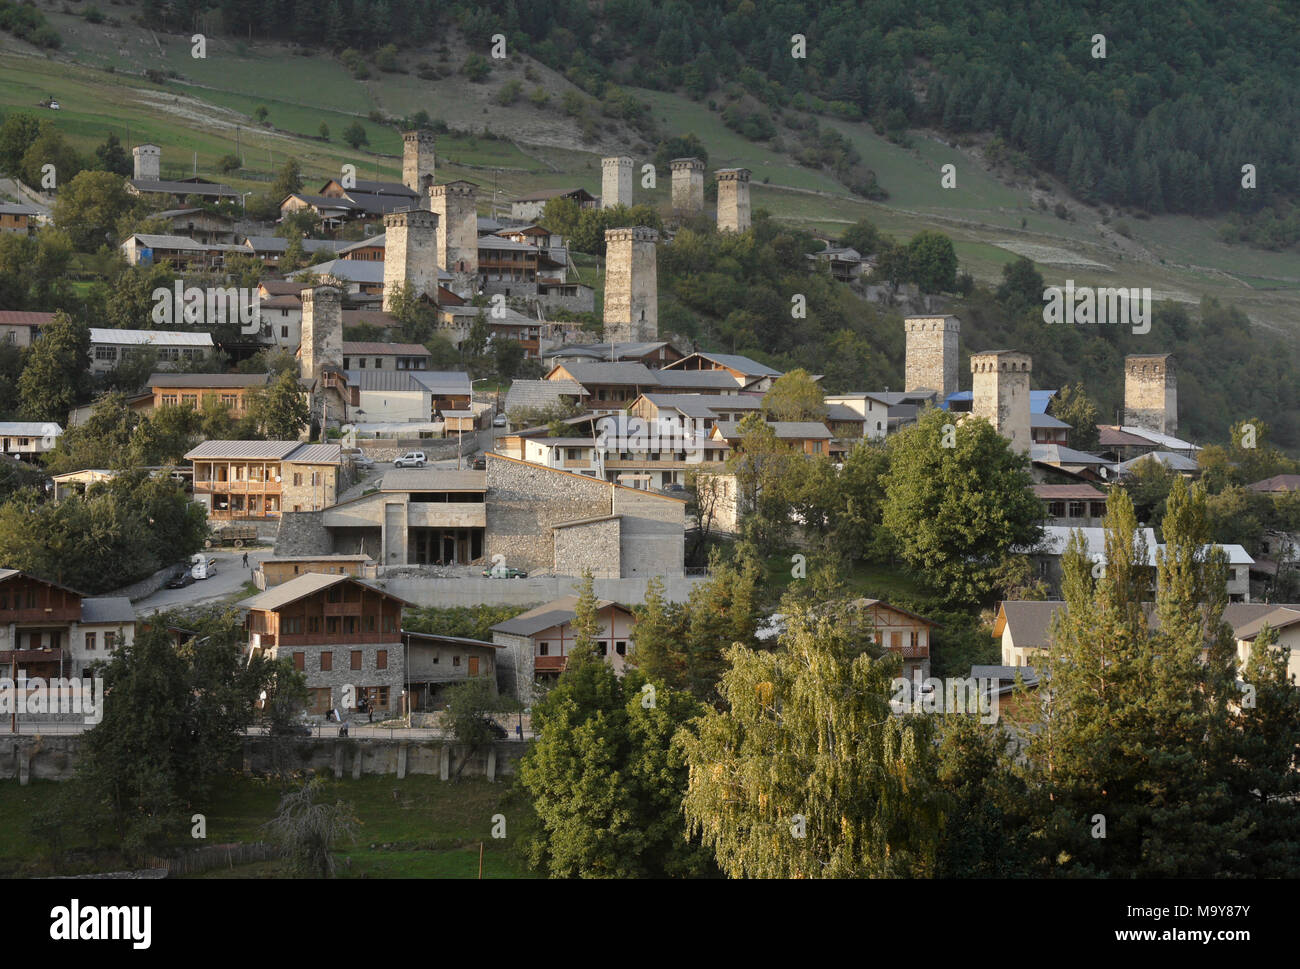 Historic tower houses amidst modern buildings on a hillside in Mestia, Svaneti region of the Caucasus, Georgia - Stock Image